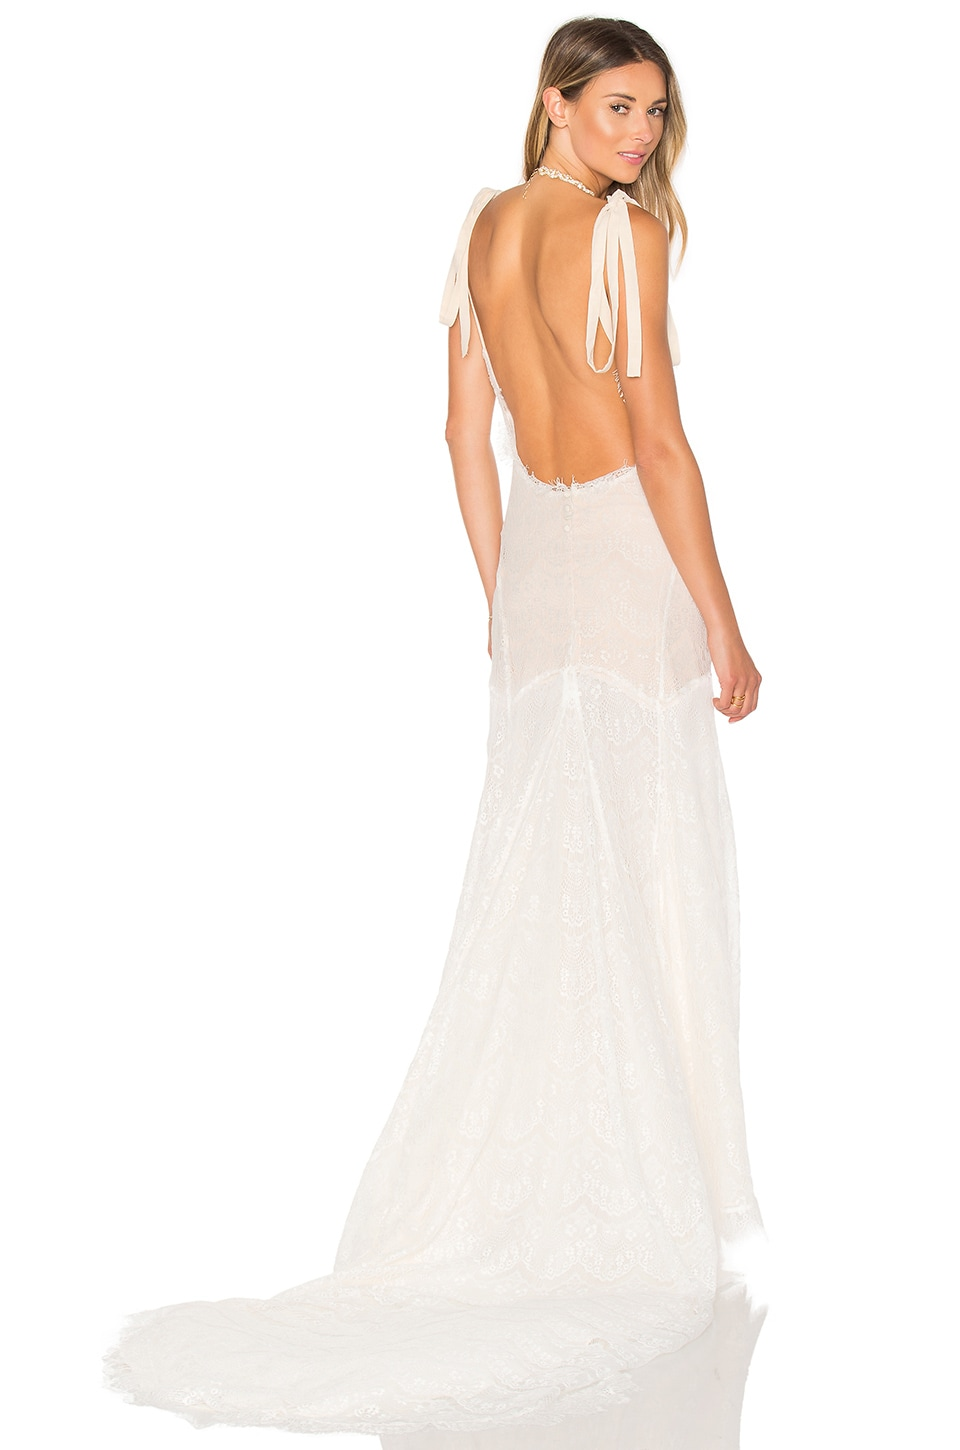 x REVOLVE Olie Gown by daughters of simone